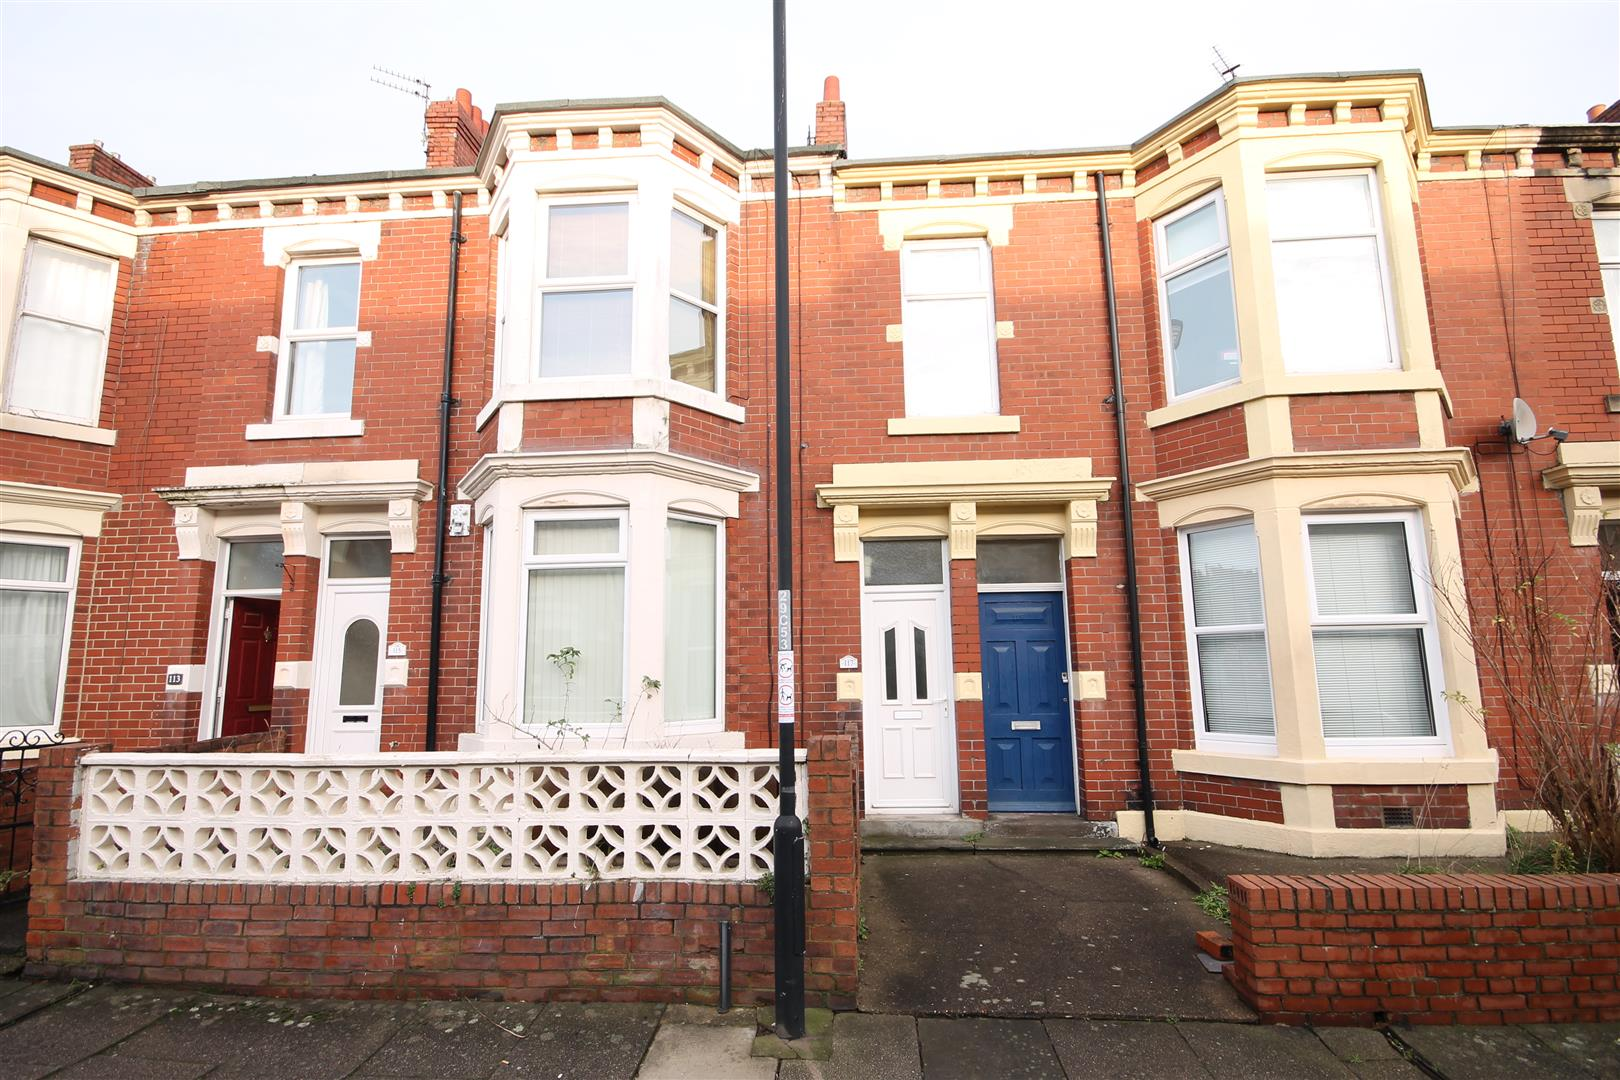 Cartington Terrace Newcastle Upon Tyne, 3 Bedrooms  Maisonette ,Sold (STC)